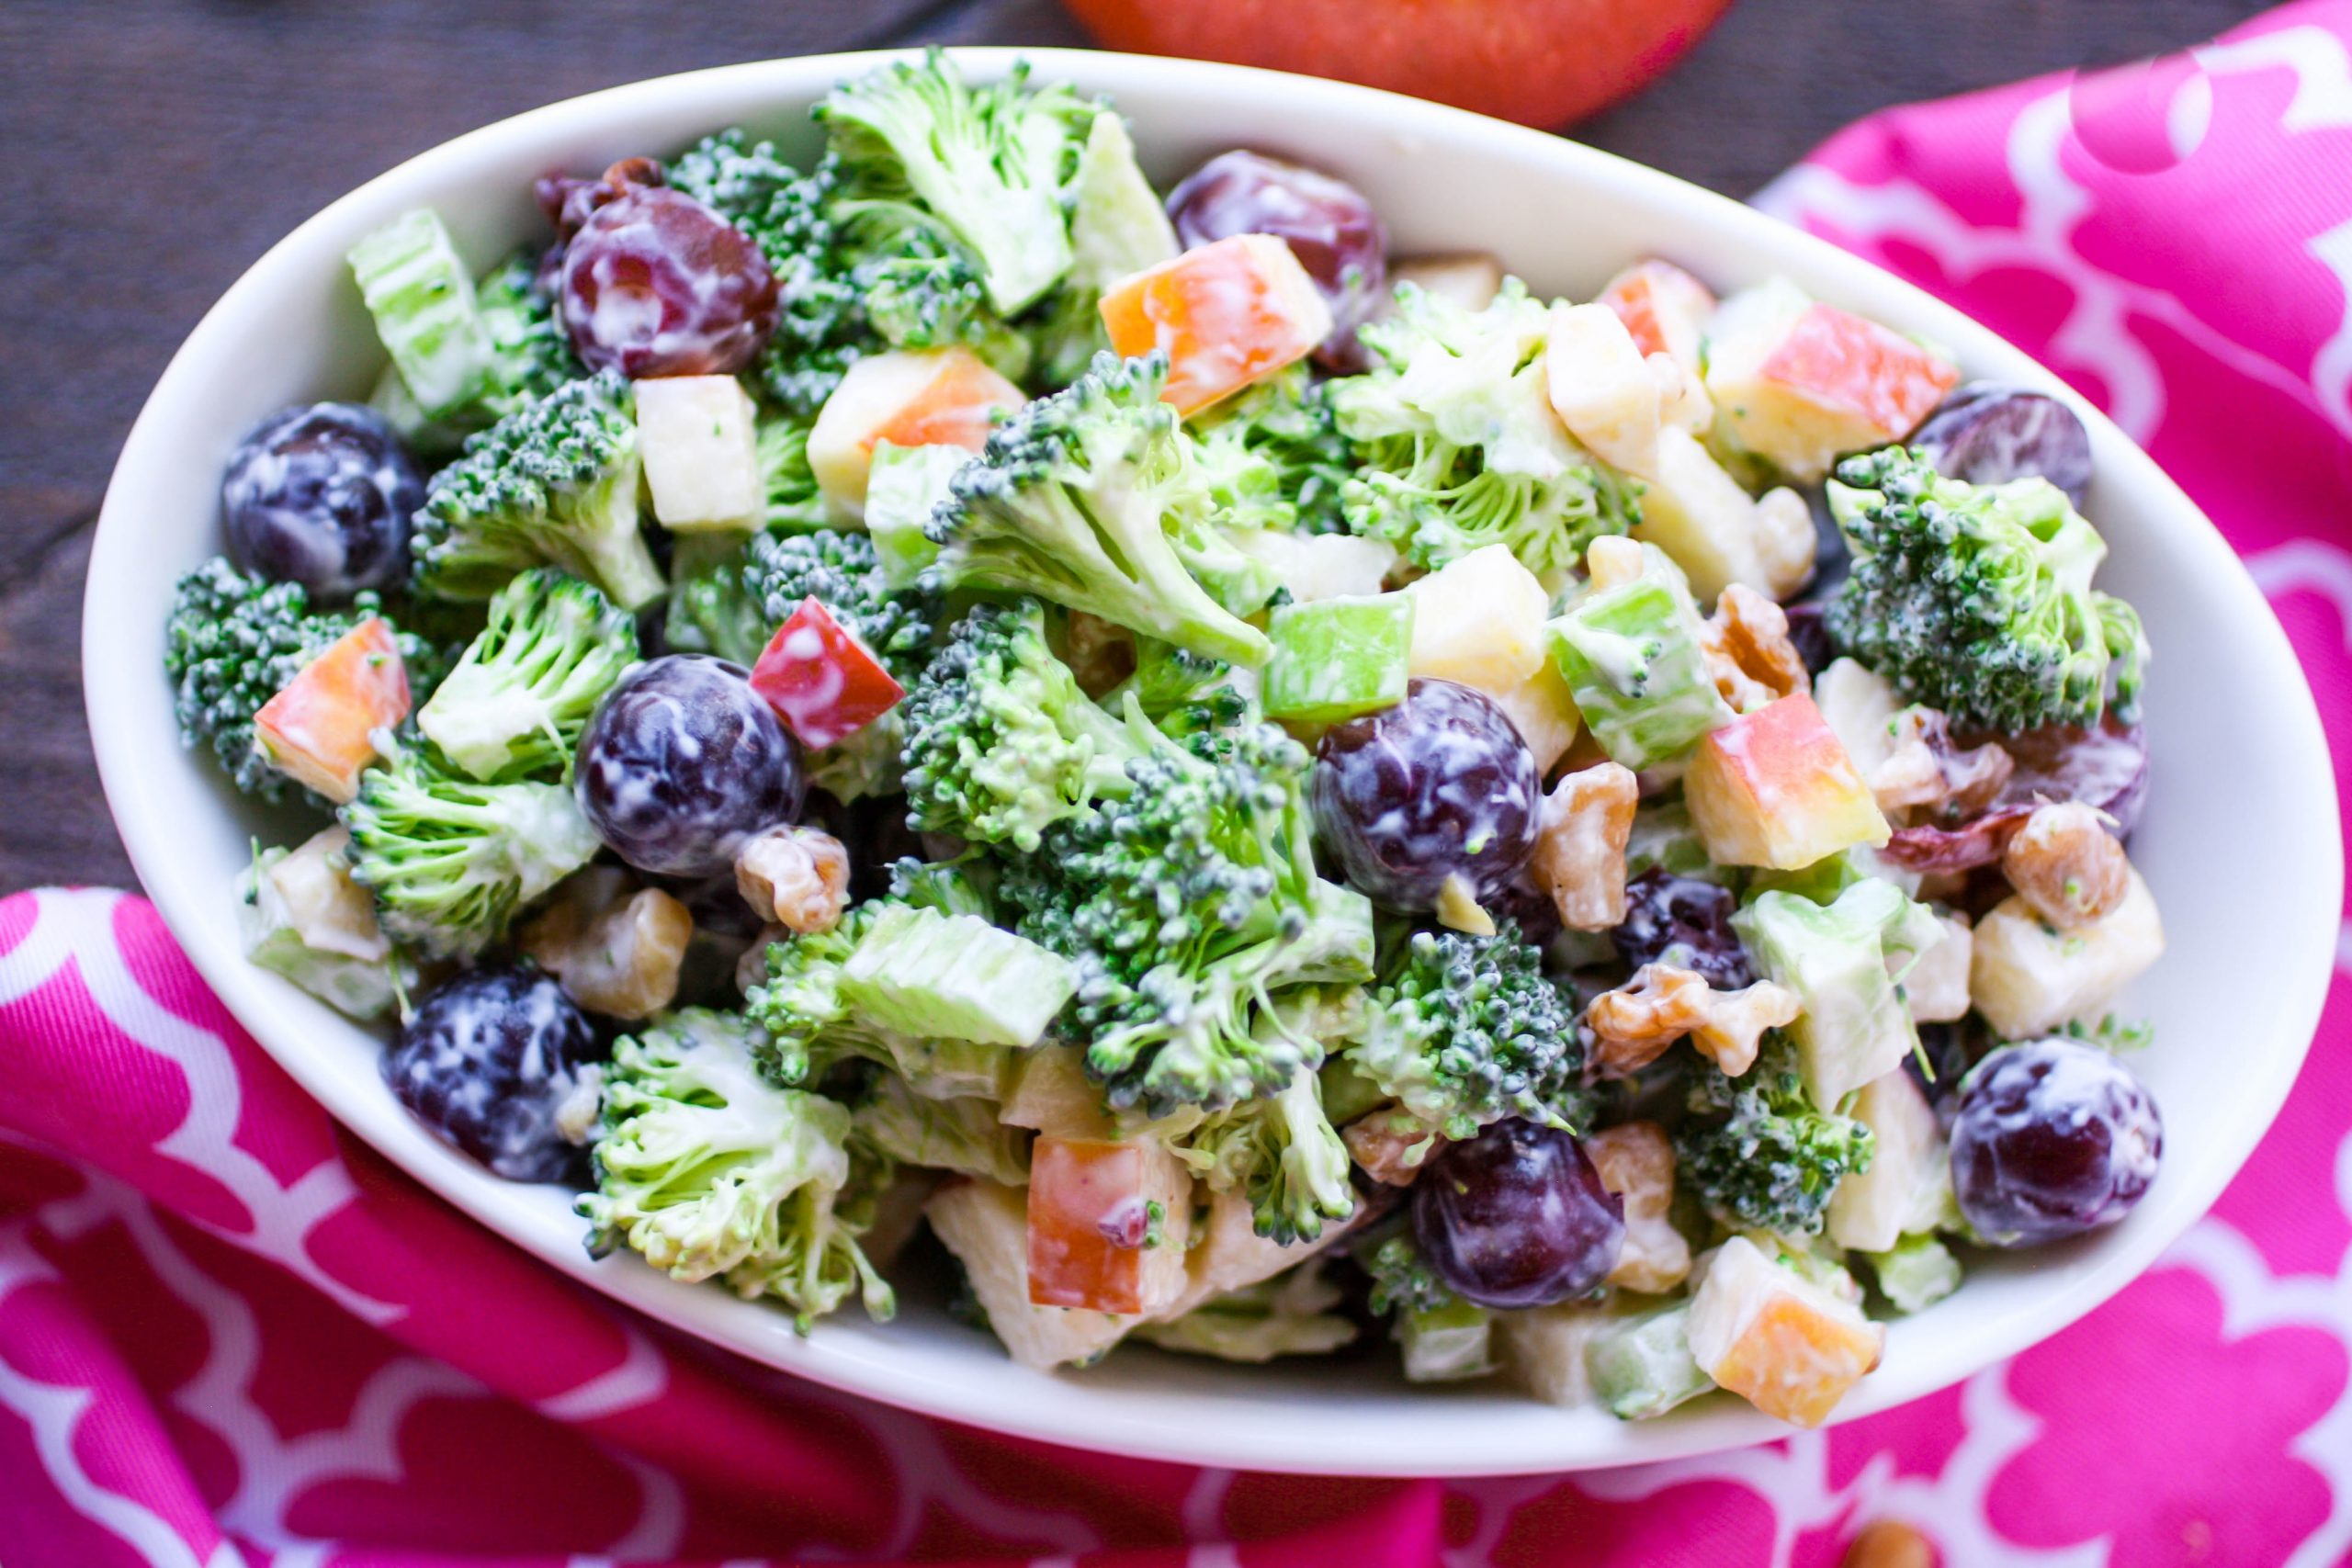 Check out all the goodies in this Broccoli Waldorf Salad!